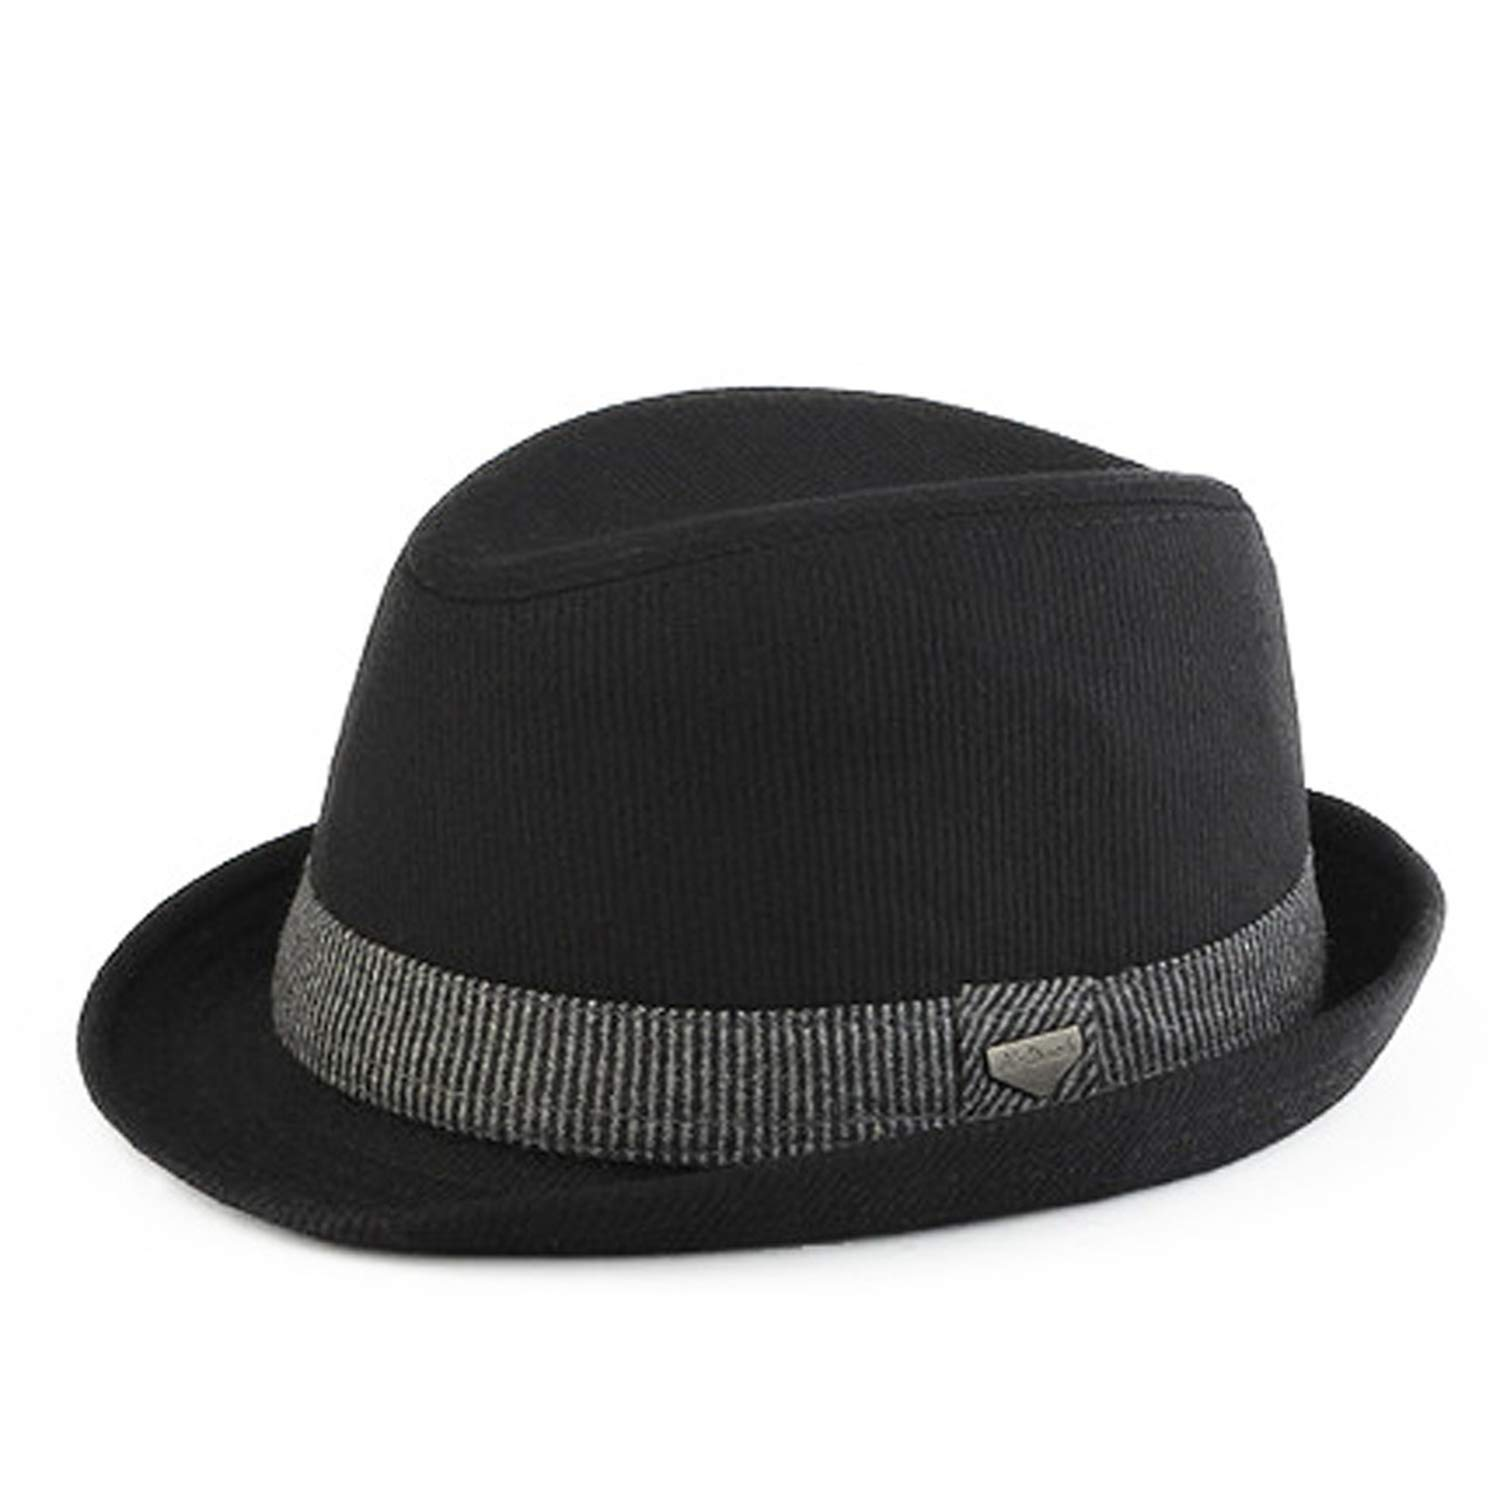 Striped Trilby Hat for Men Vintage Wool Felt Fedora Hats Autumn Spring Summer Wide Brim Gentleman Jazz Caps